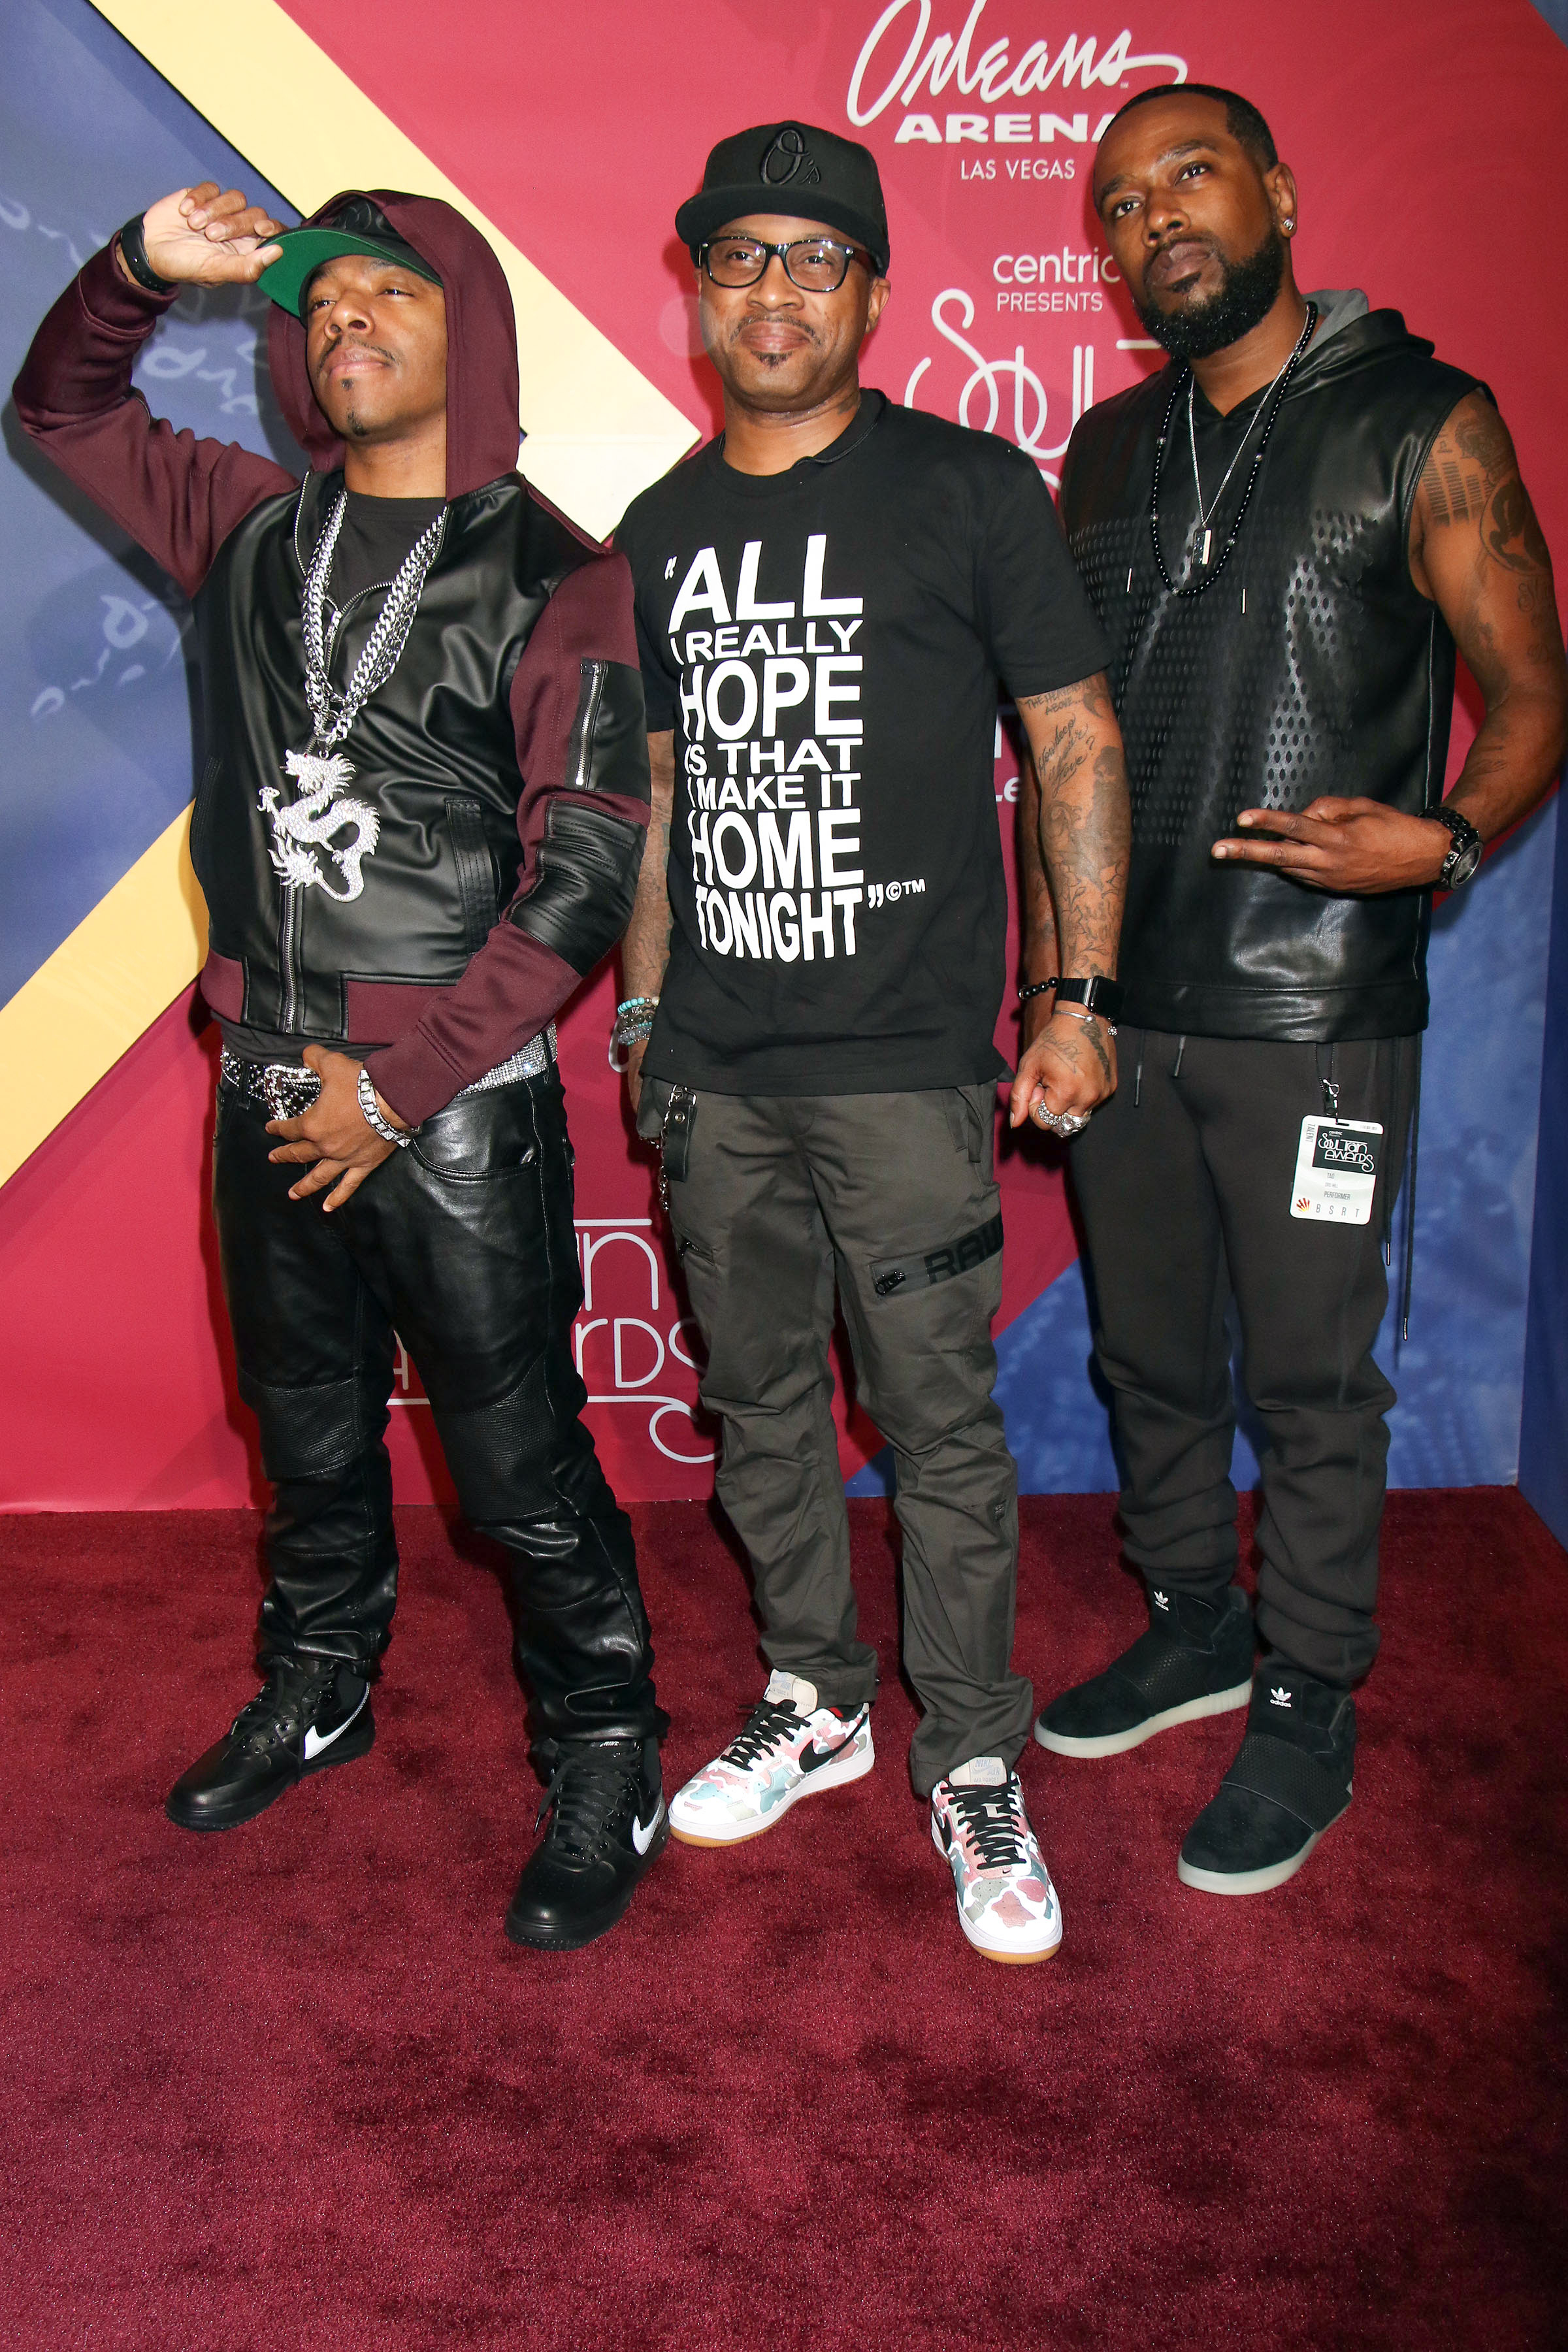 11/06/2016 - Dru Hill - 2016 Soul Train Music Awards - Arrivals - Orleans Arena at the Orleans Hotel & Casino - Las Vegas, NV, USA - Keywords: Sisqo, Nokio the N-Tity, Antwuan Simpson, Tao, Vertical, Award Show, Arrival, Portrait, Photography, Arts Culture and Entertainment, Attending, Person, People, Celebrity, Celebrities, Red Carpet Event, Annual Event, Nevada Orientation: Portrait Face Count: 1 - False - Photo Credit: PRN / PRPhotos.com - Contact (1-866-551-7827) - Portrait Face Count: 1